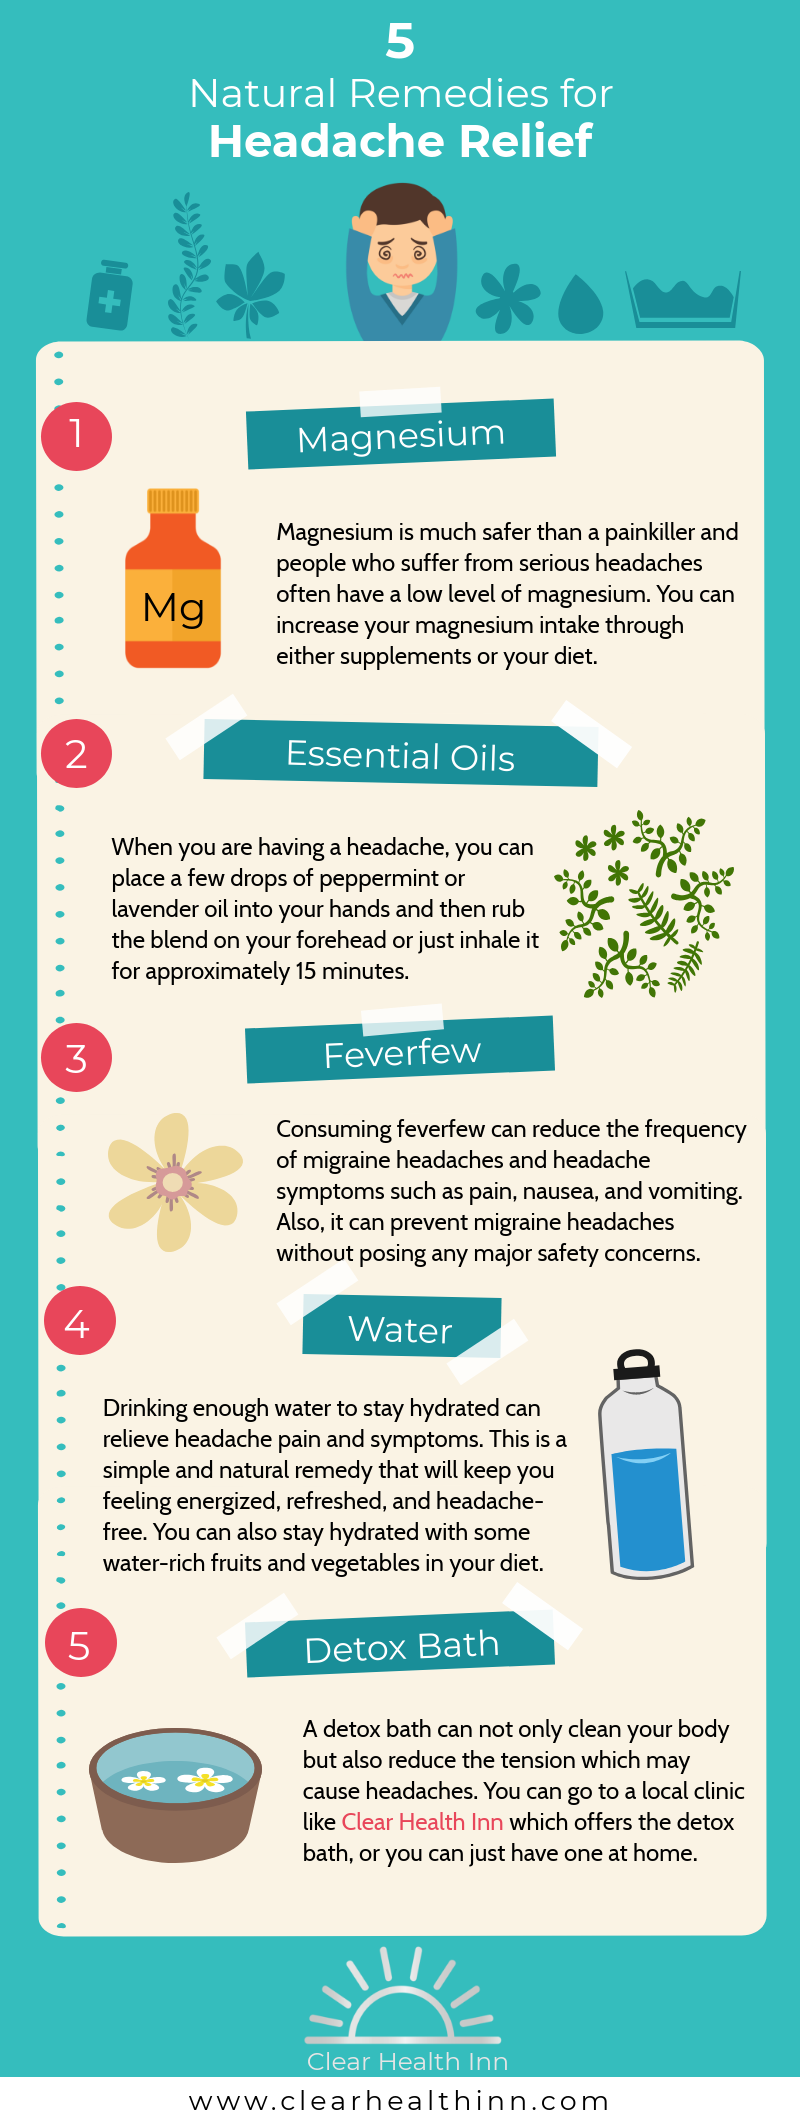 Natural remedies for Headache Relief